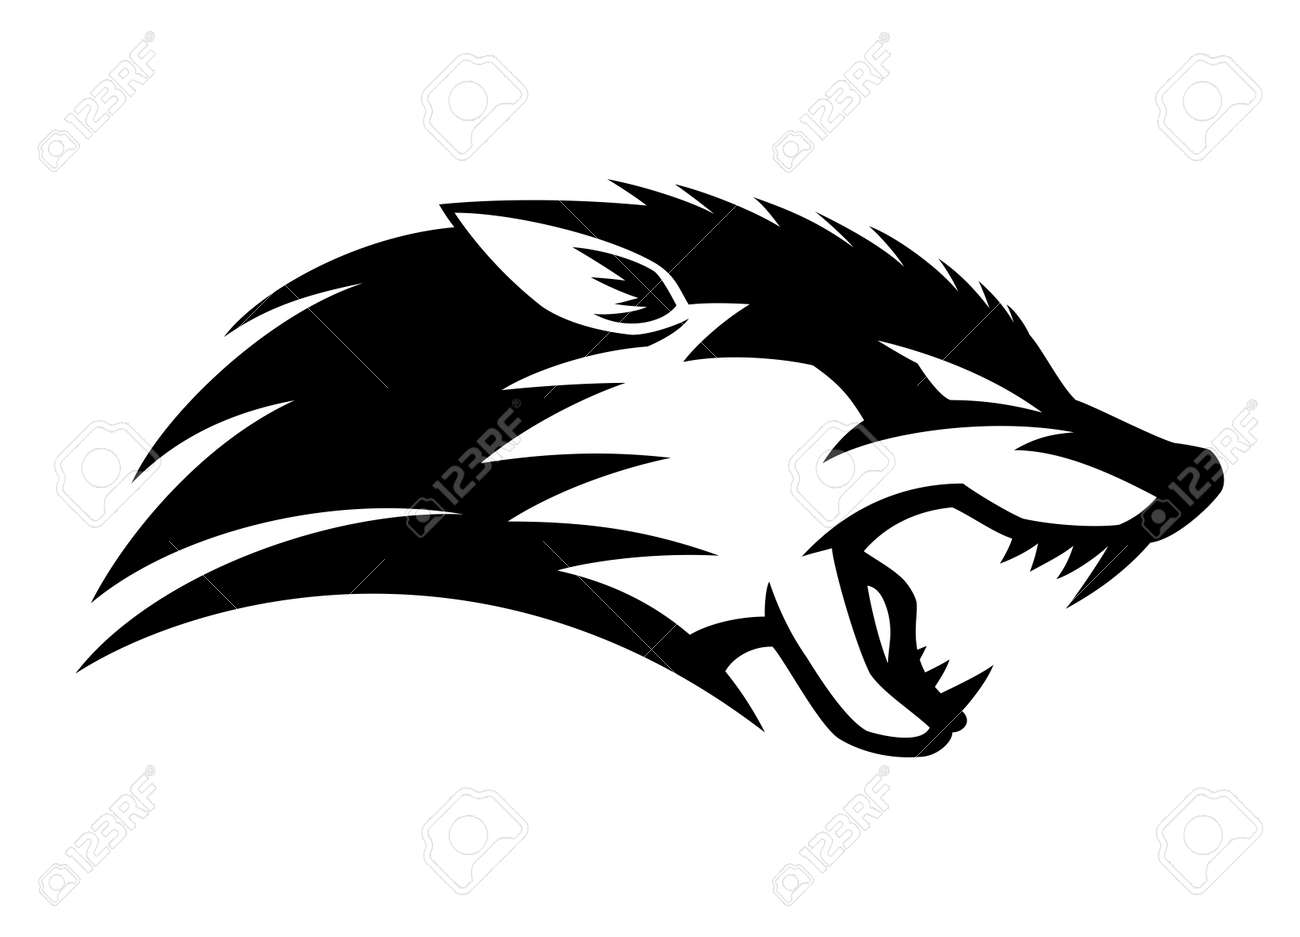 Illustration with angry wolf icon isolated on white background. - 166249580